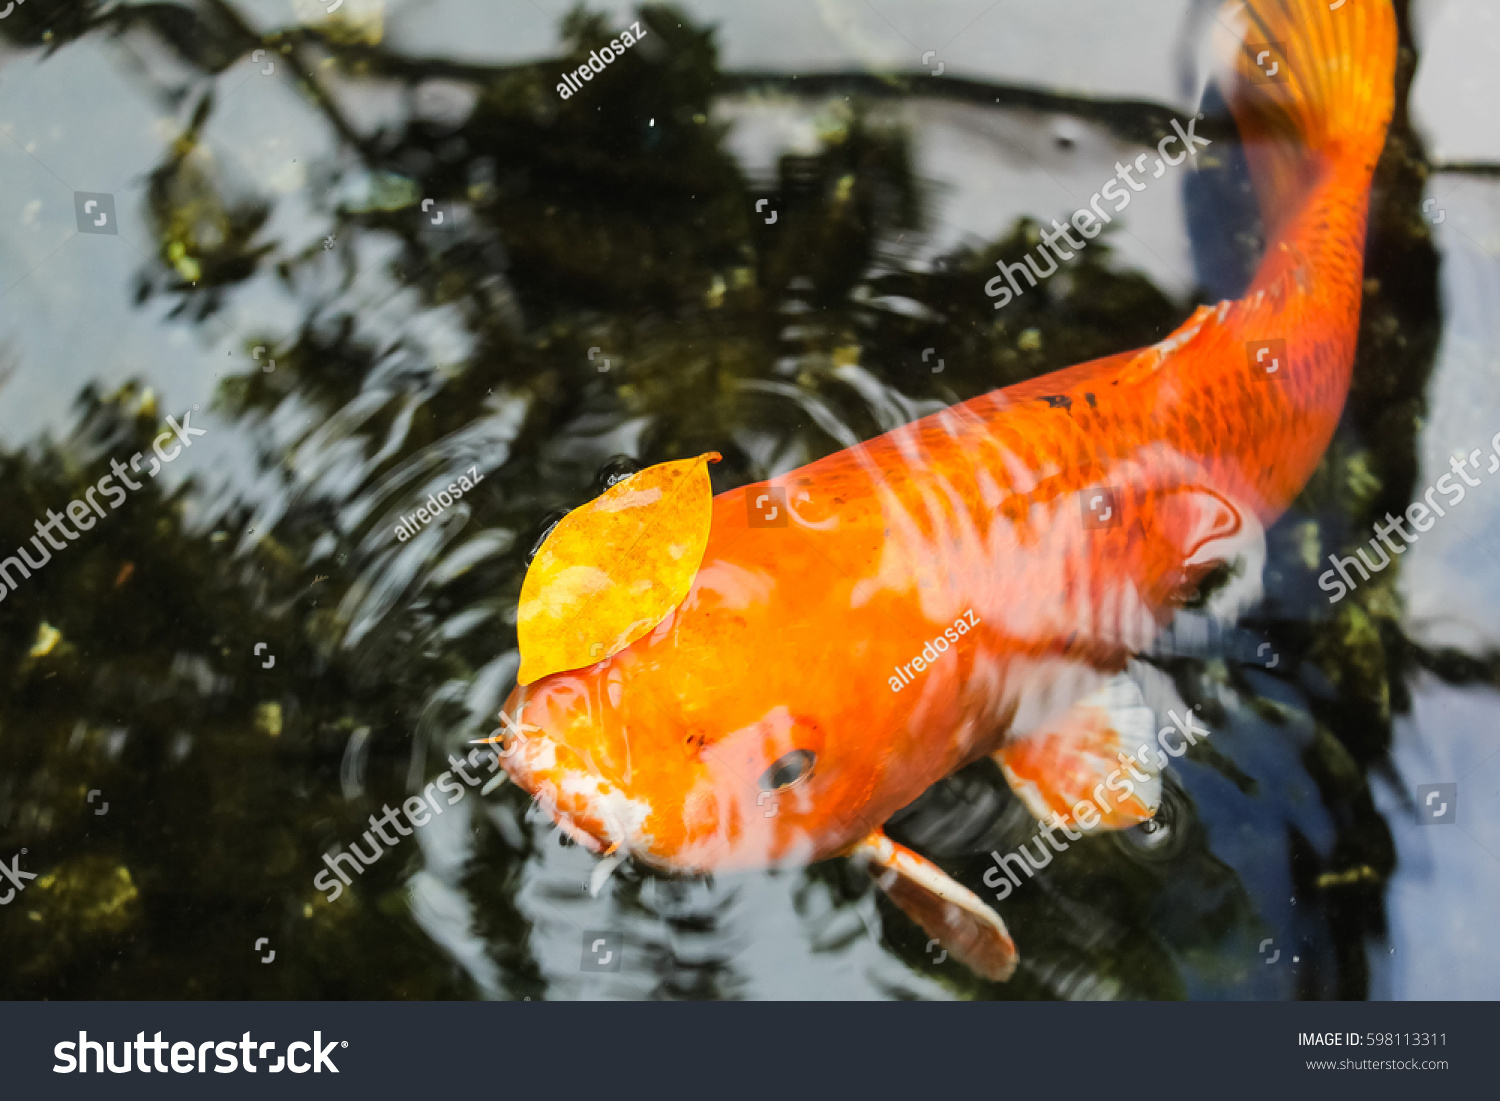 Koi fancy orange carp stock photo 598113311 shutterstock for Orange koi carp